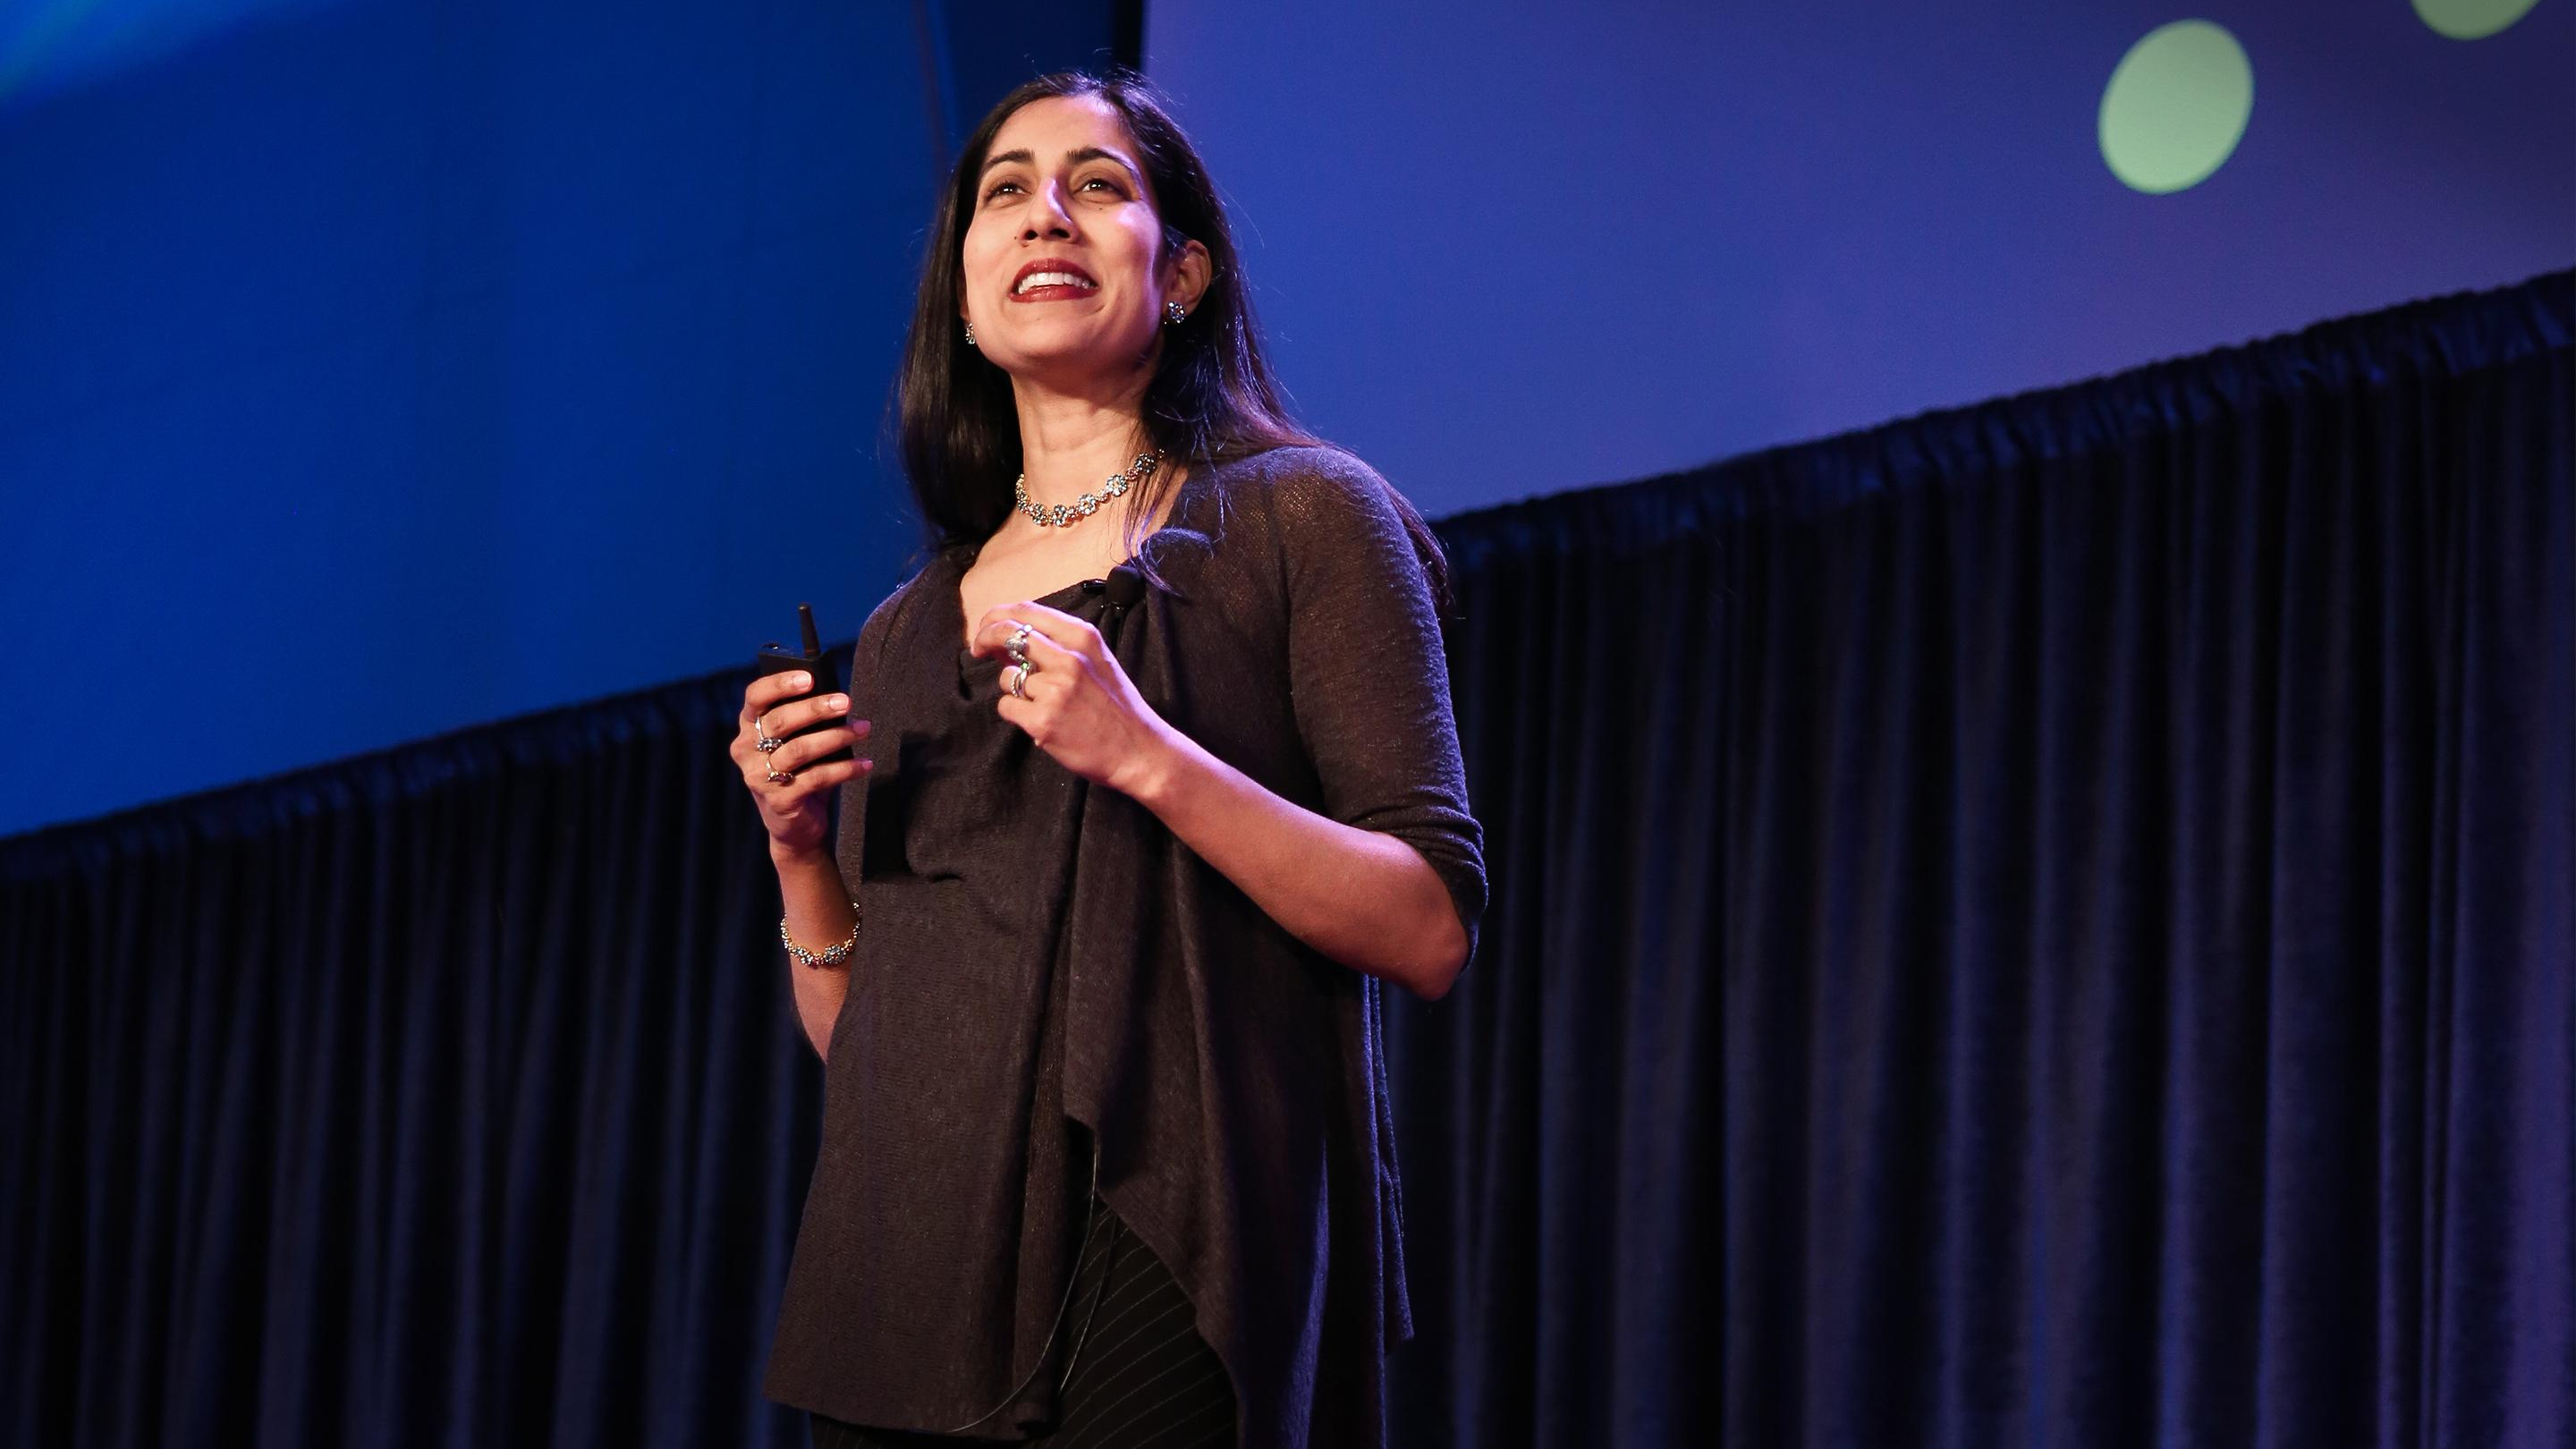 The secret to great opportunities? The person you haven't met yet | Tanya Menon